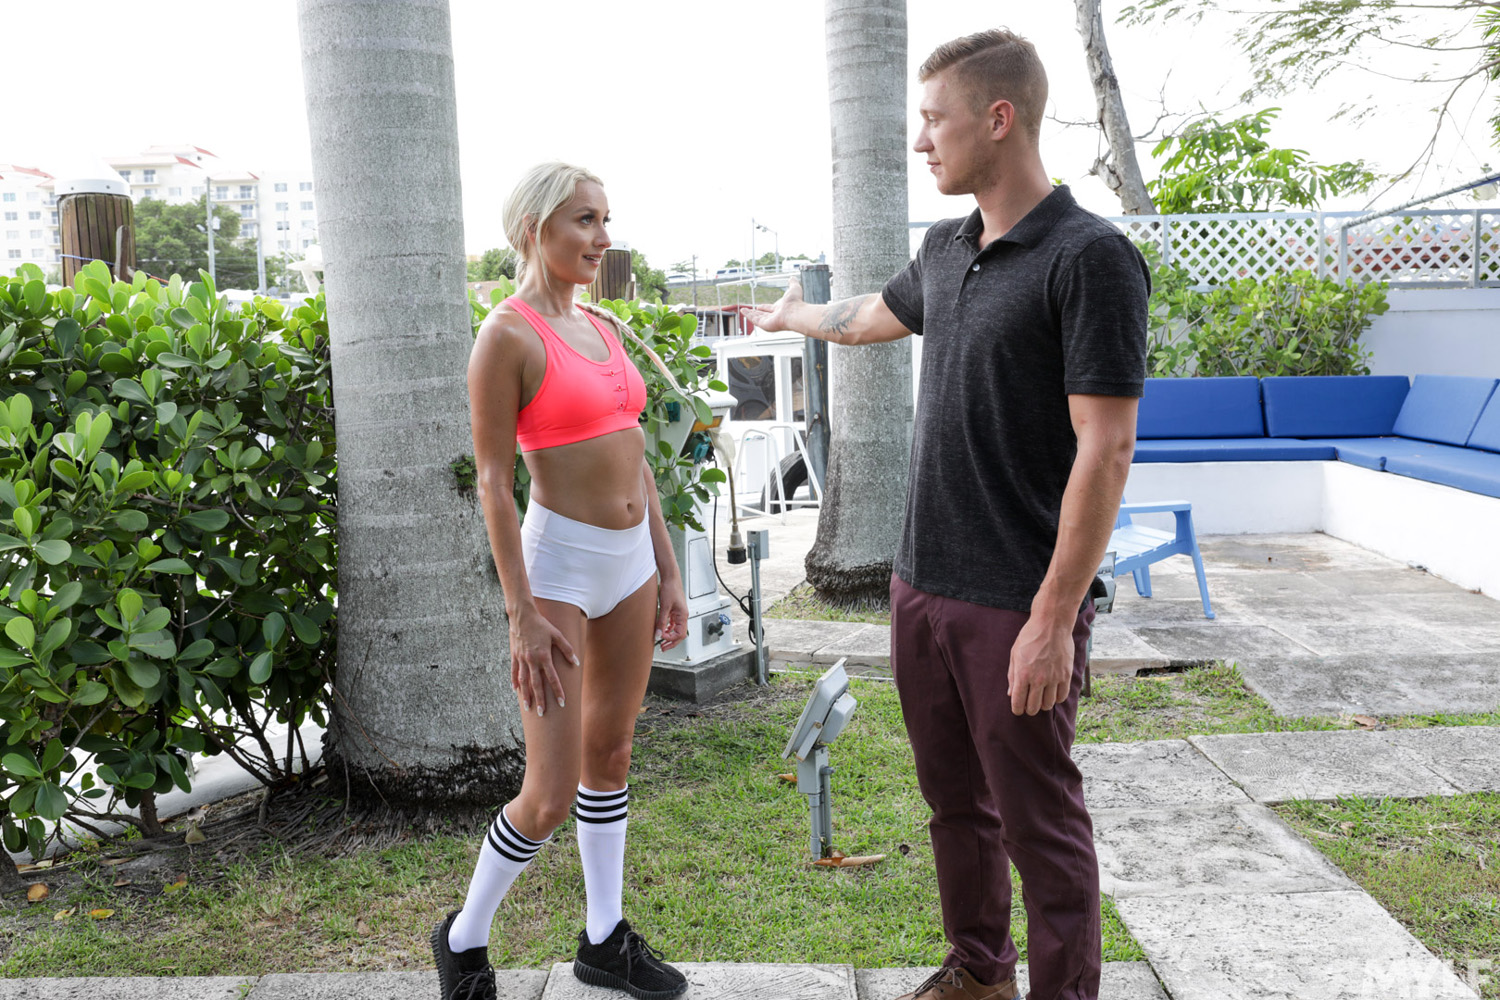 Agent Street Porn misha mynx bangs the real estate agent to obtain a better price